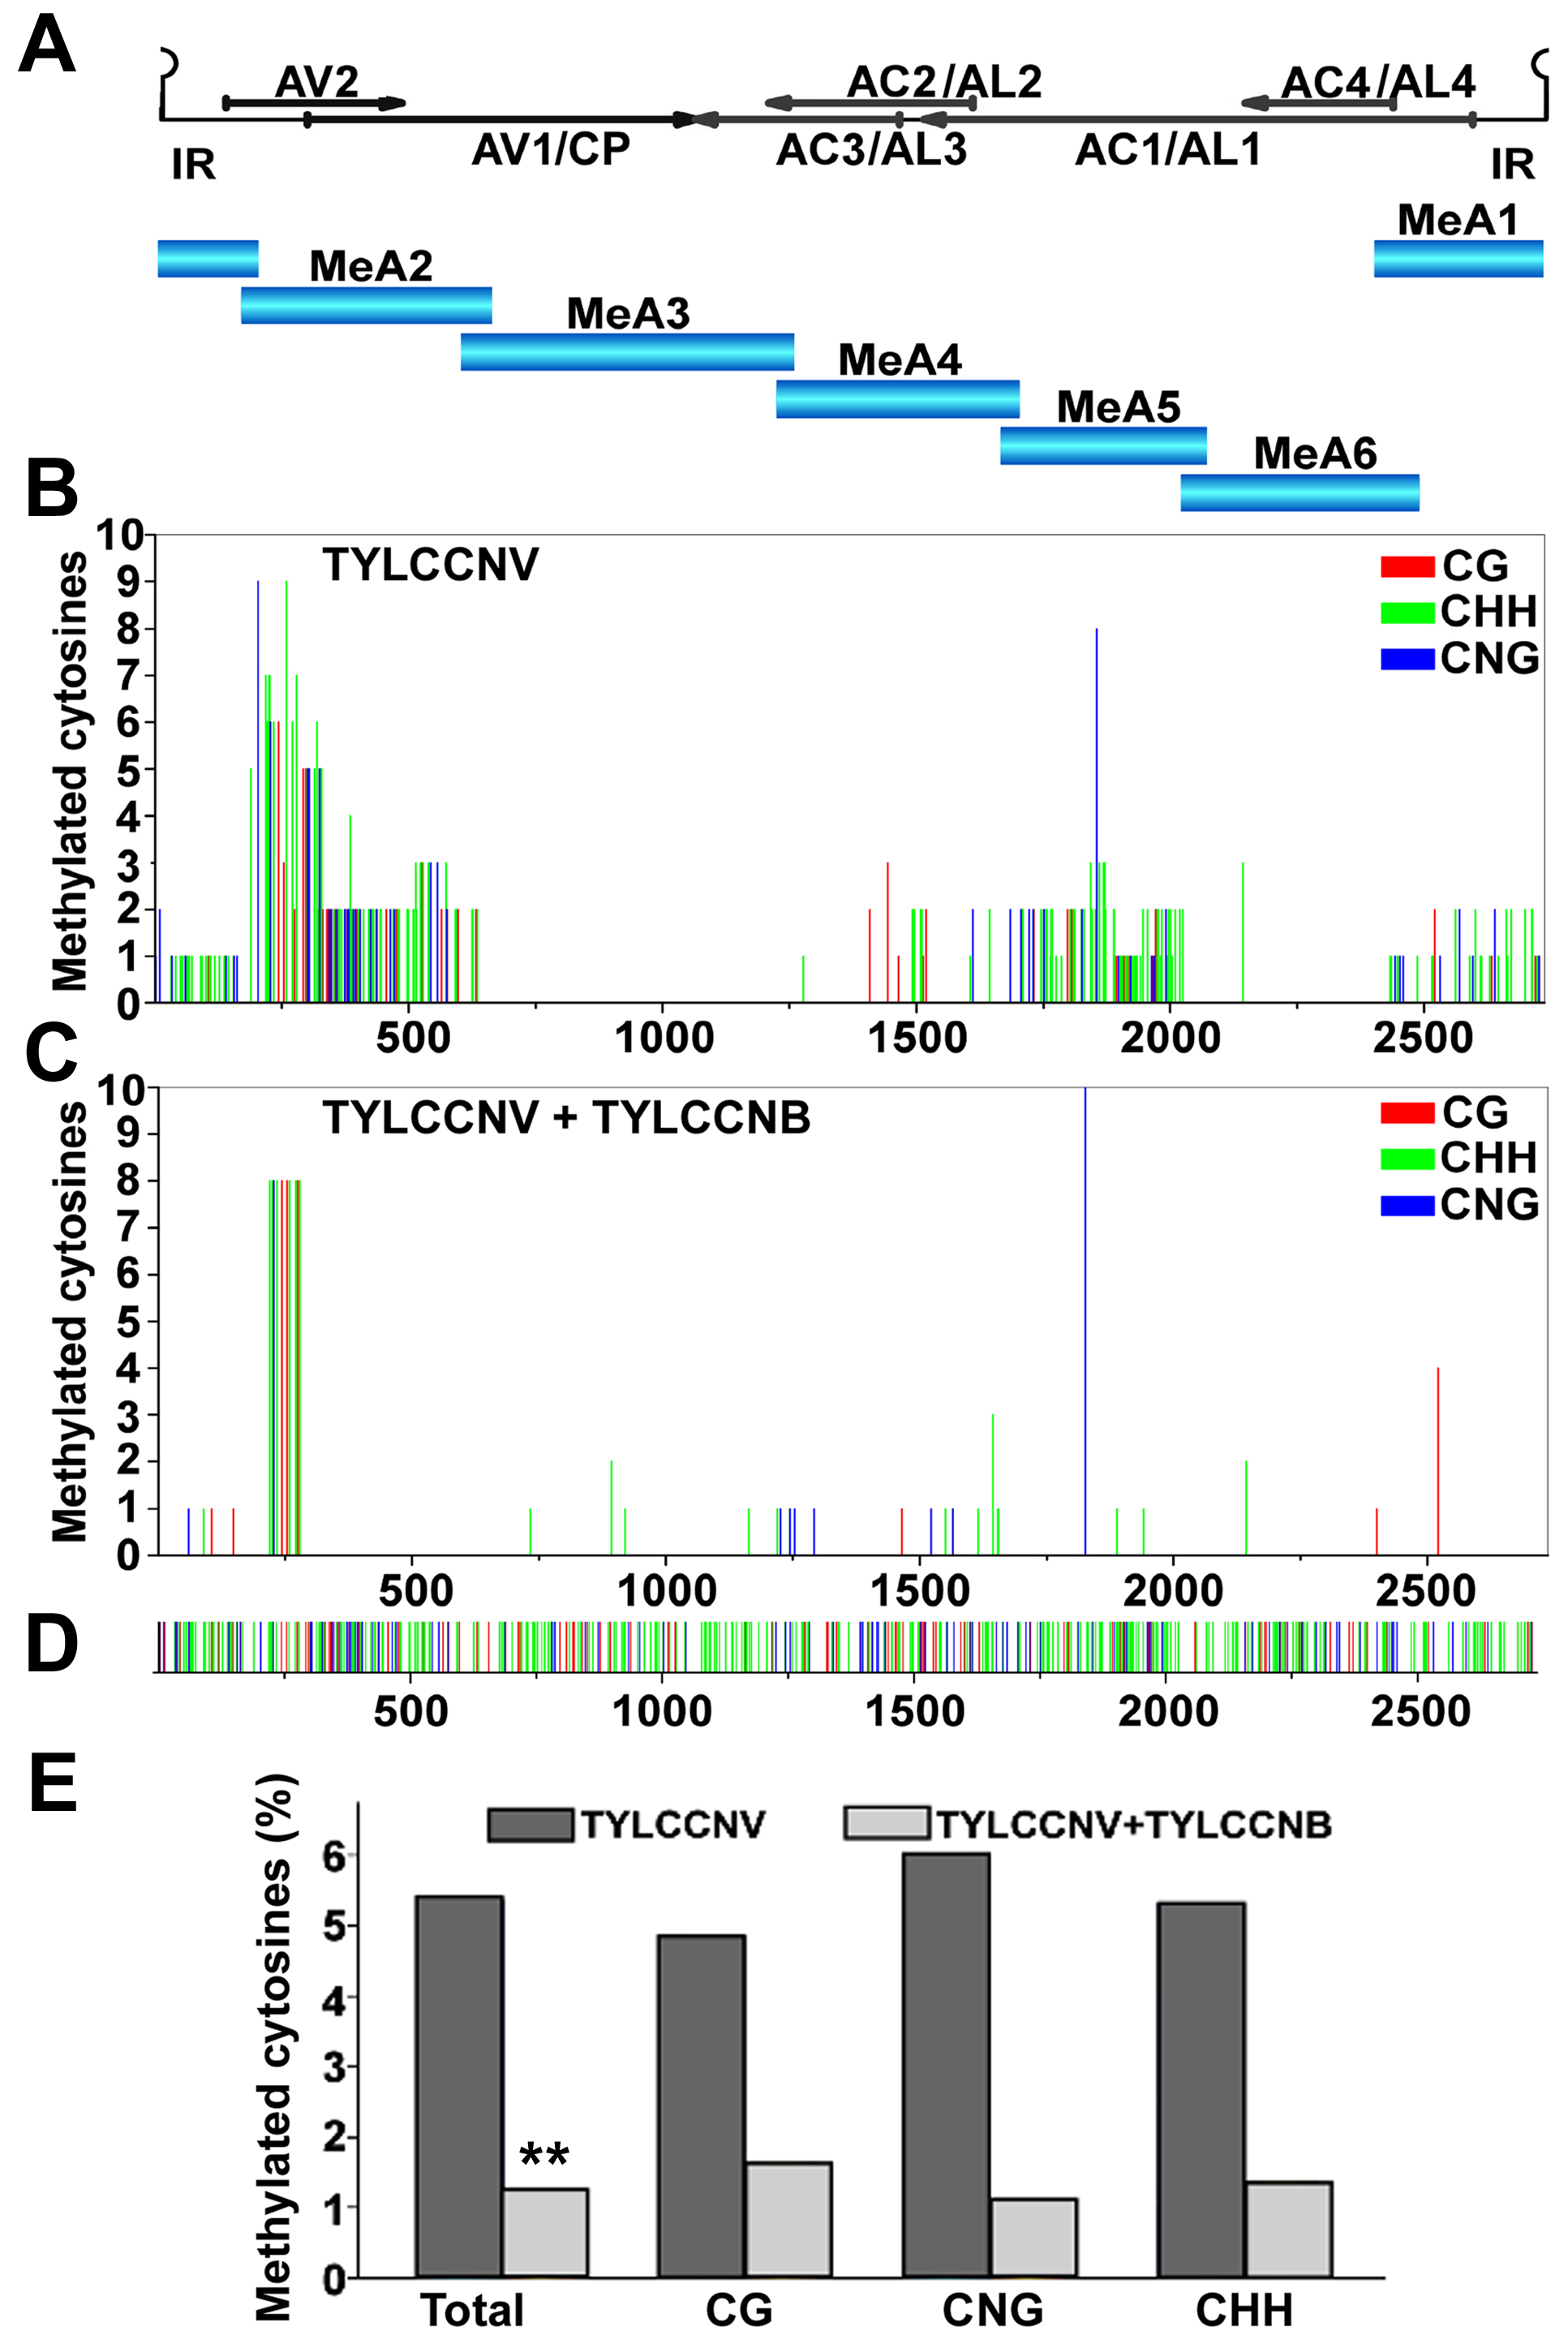 TYLCCNB reduces TYLCCNV DNA methylation genome-wide.